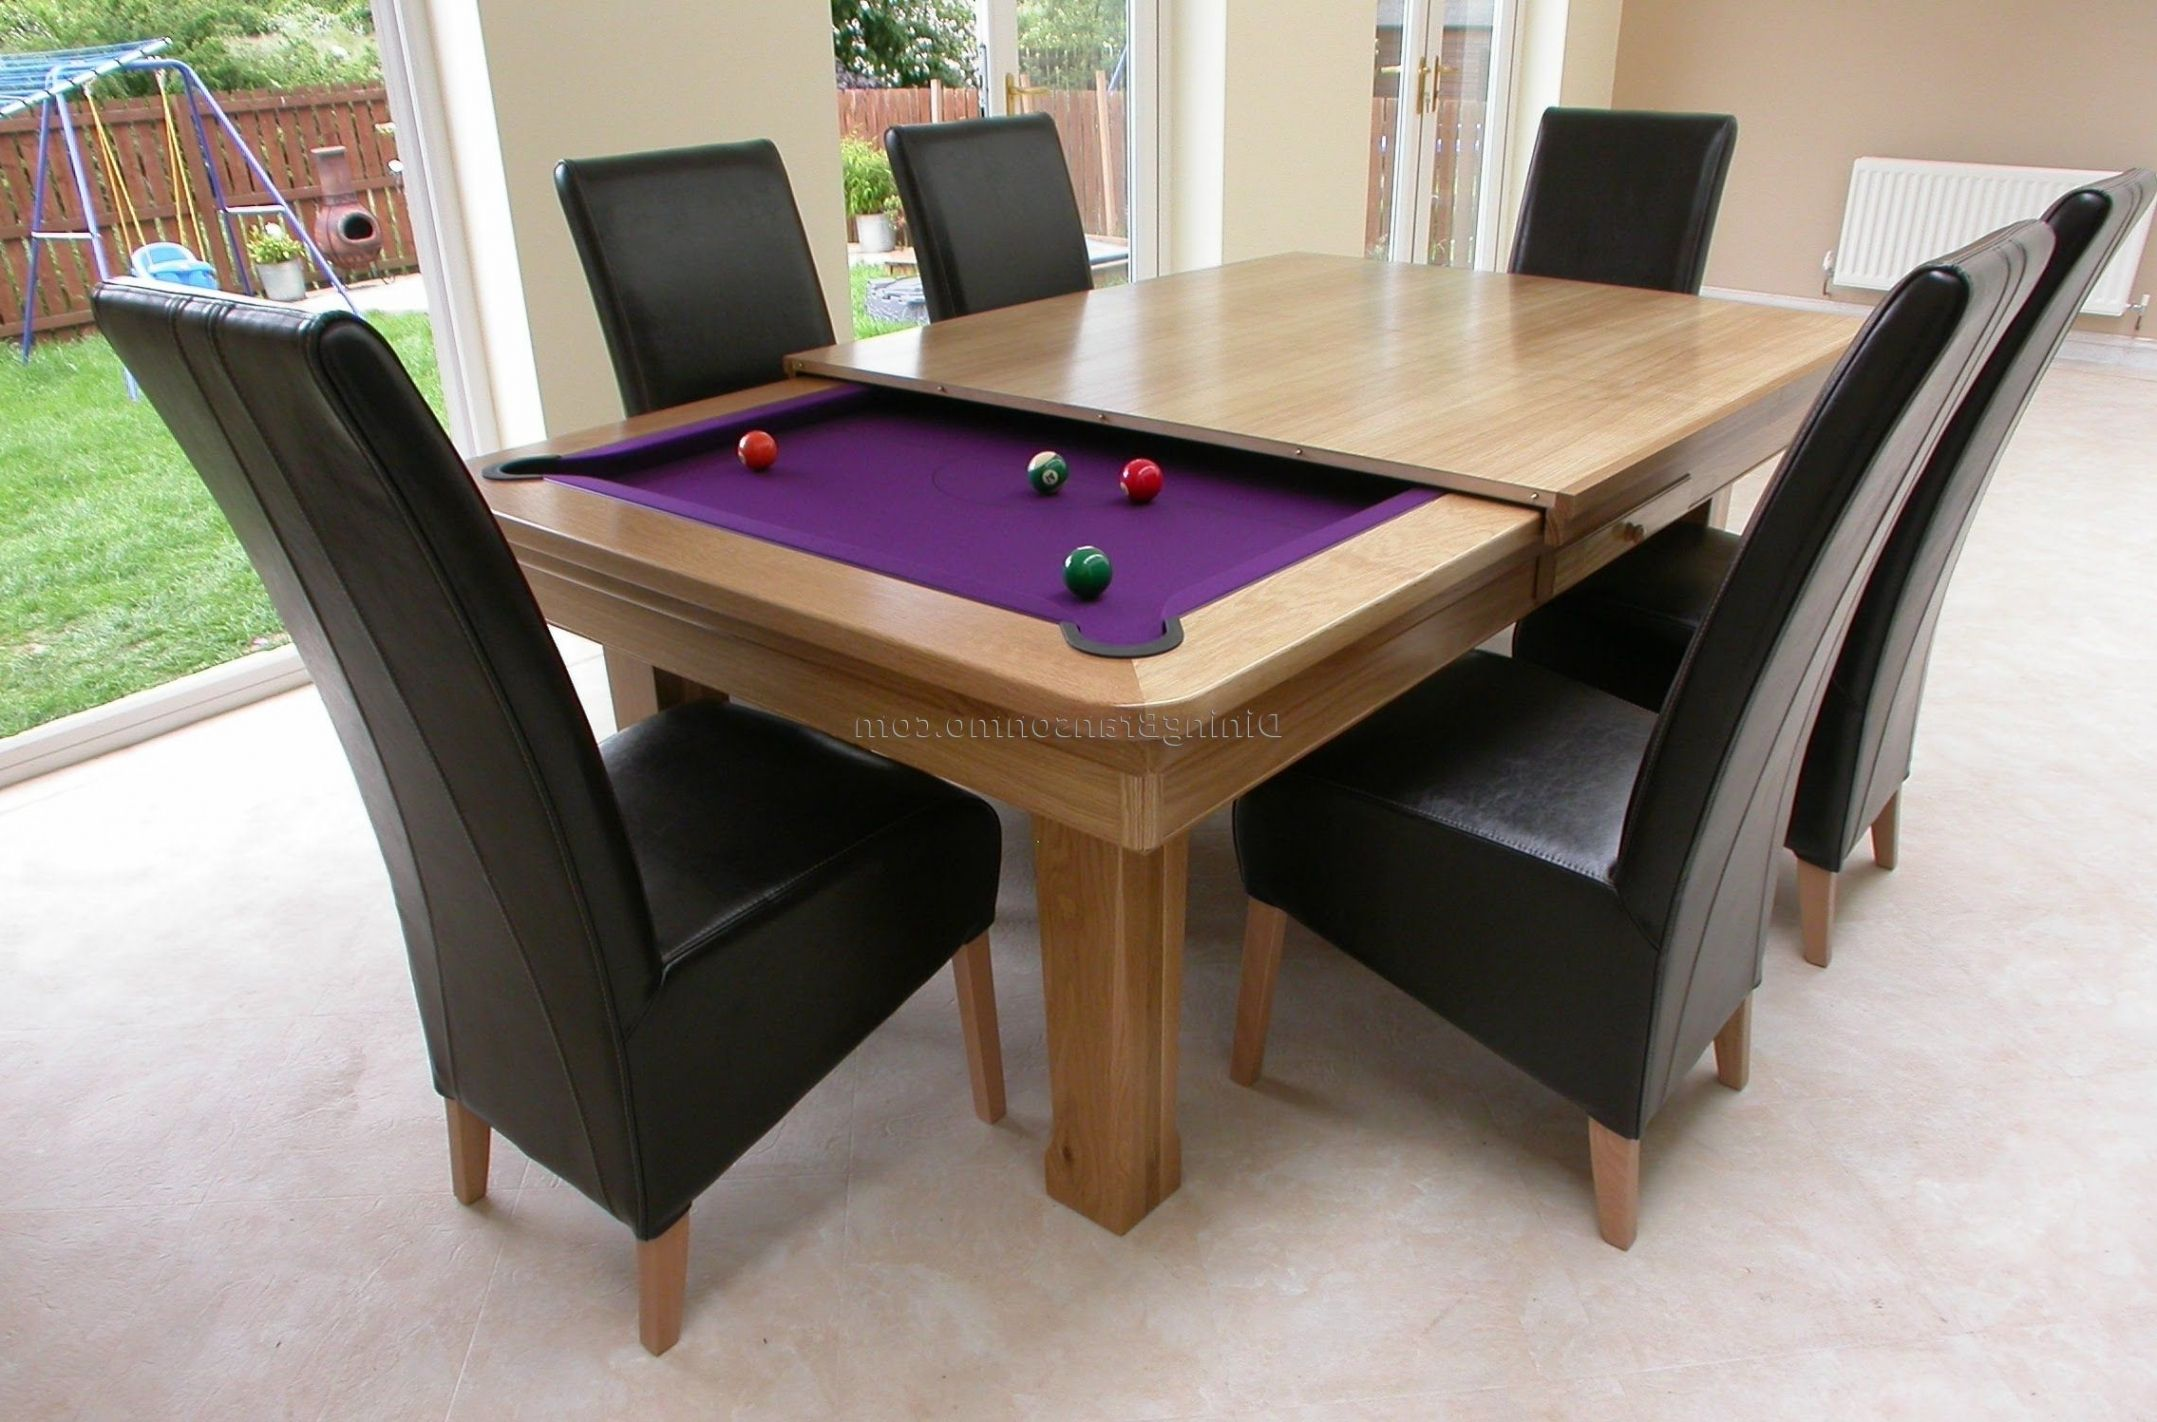 The Best Amazing Dining And Pool Table In One Collections Ideas Freshouz Com Dining Room Pool Table Pool Table Dining Table Pool Table Room